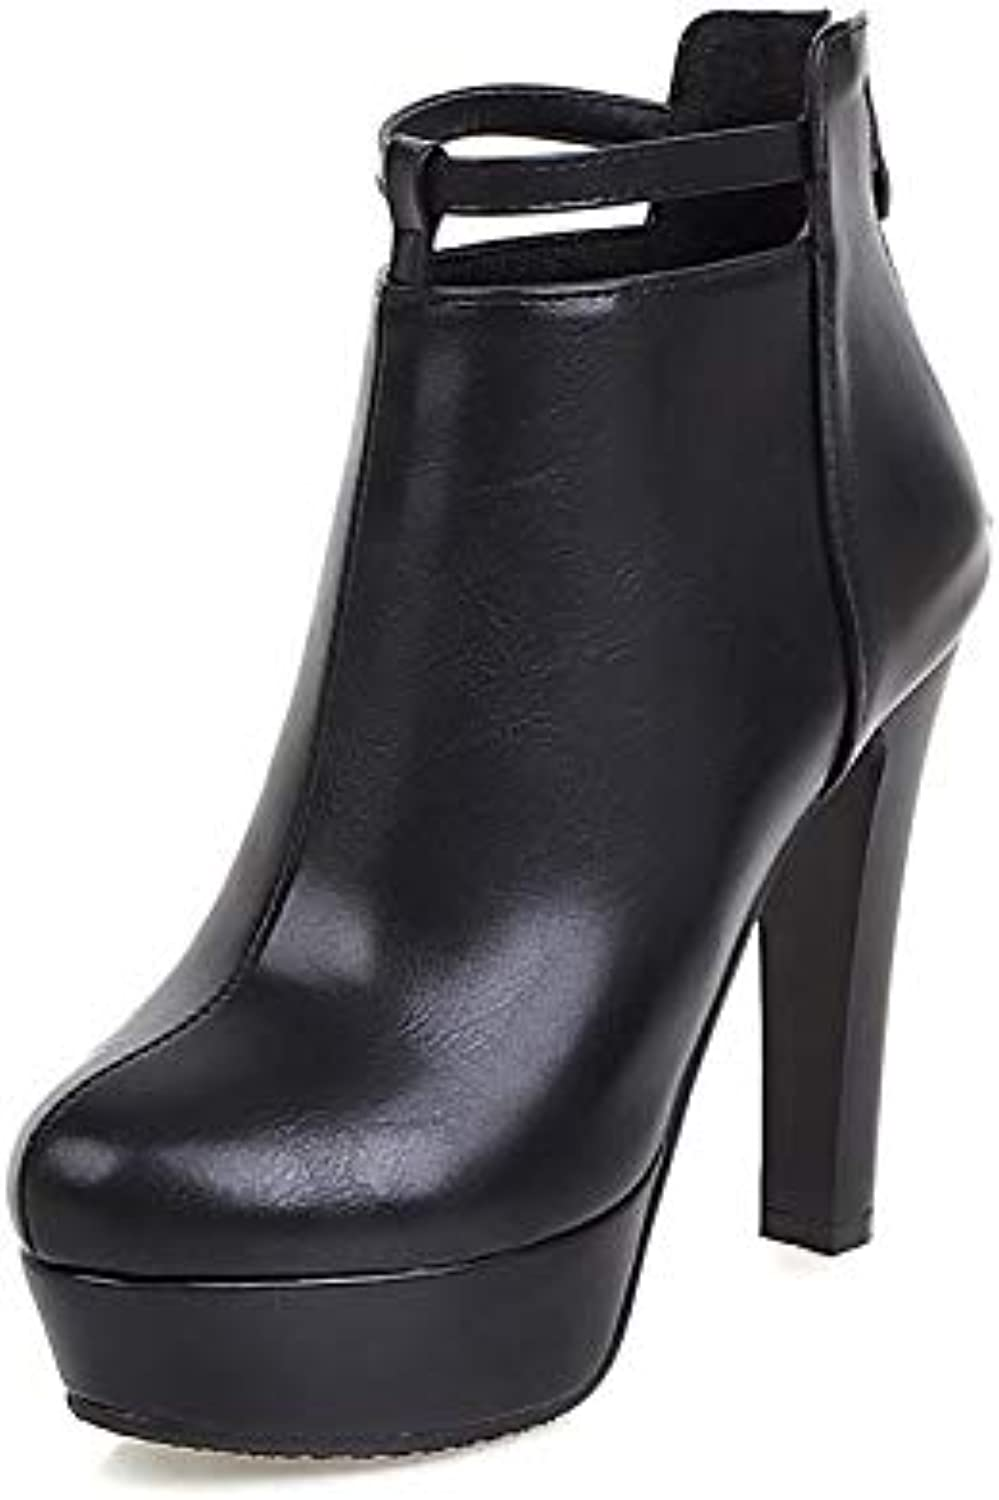 Donna Fashion Boots Faux Leather Winter British Boots Chunky Heel Round Toe Booties /Ankle Boots White /Black / Red /Party *Sera